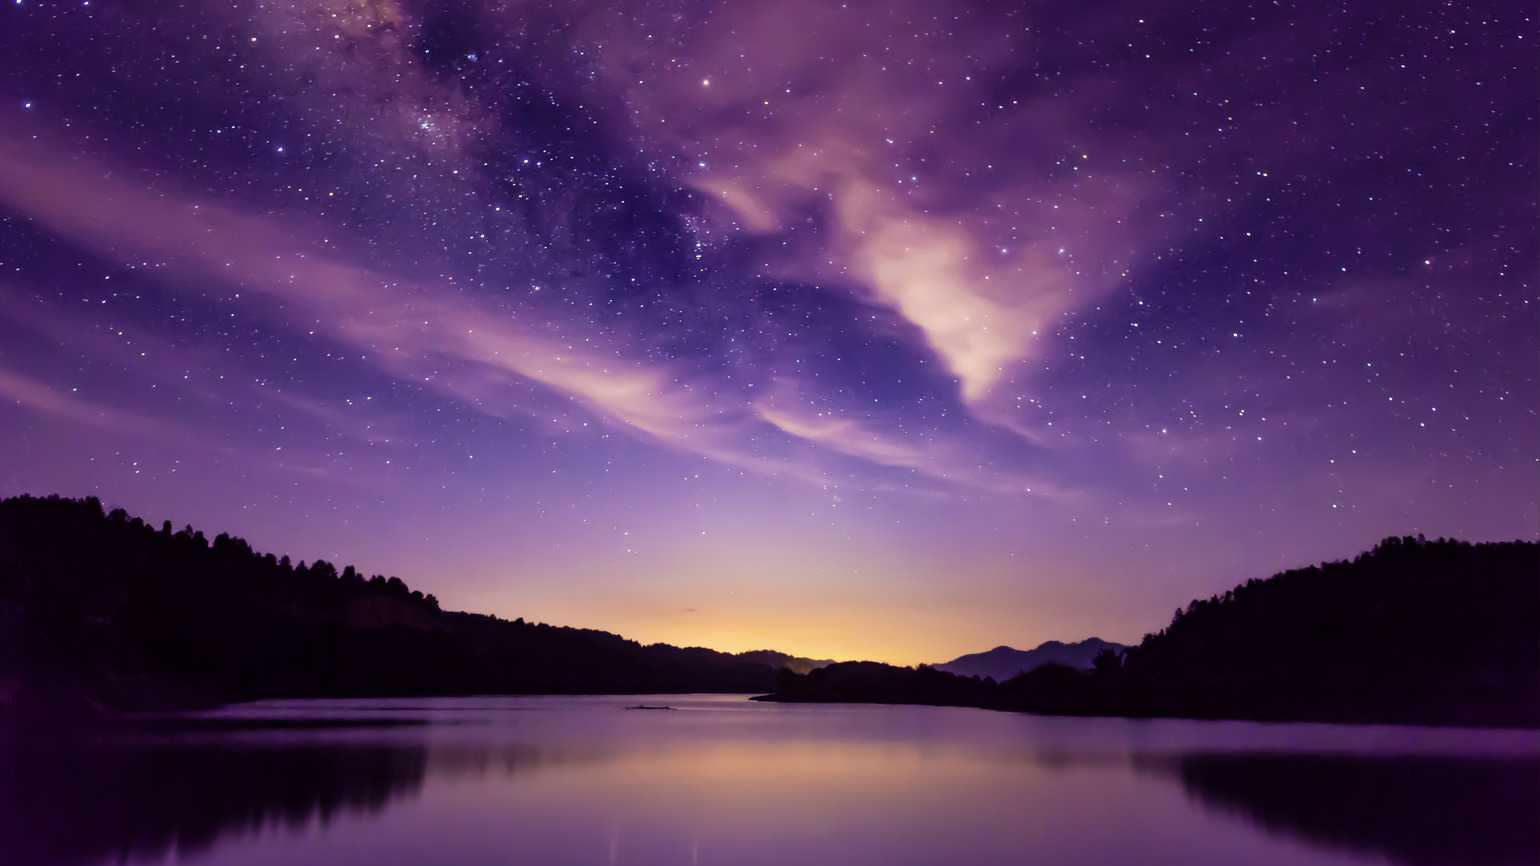 Milky way and Starry sky scene (Getty Images)